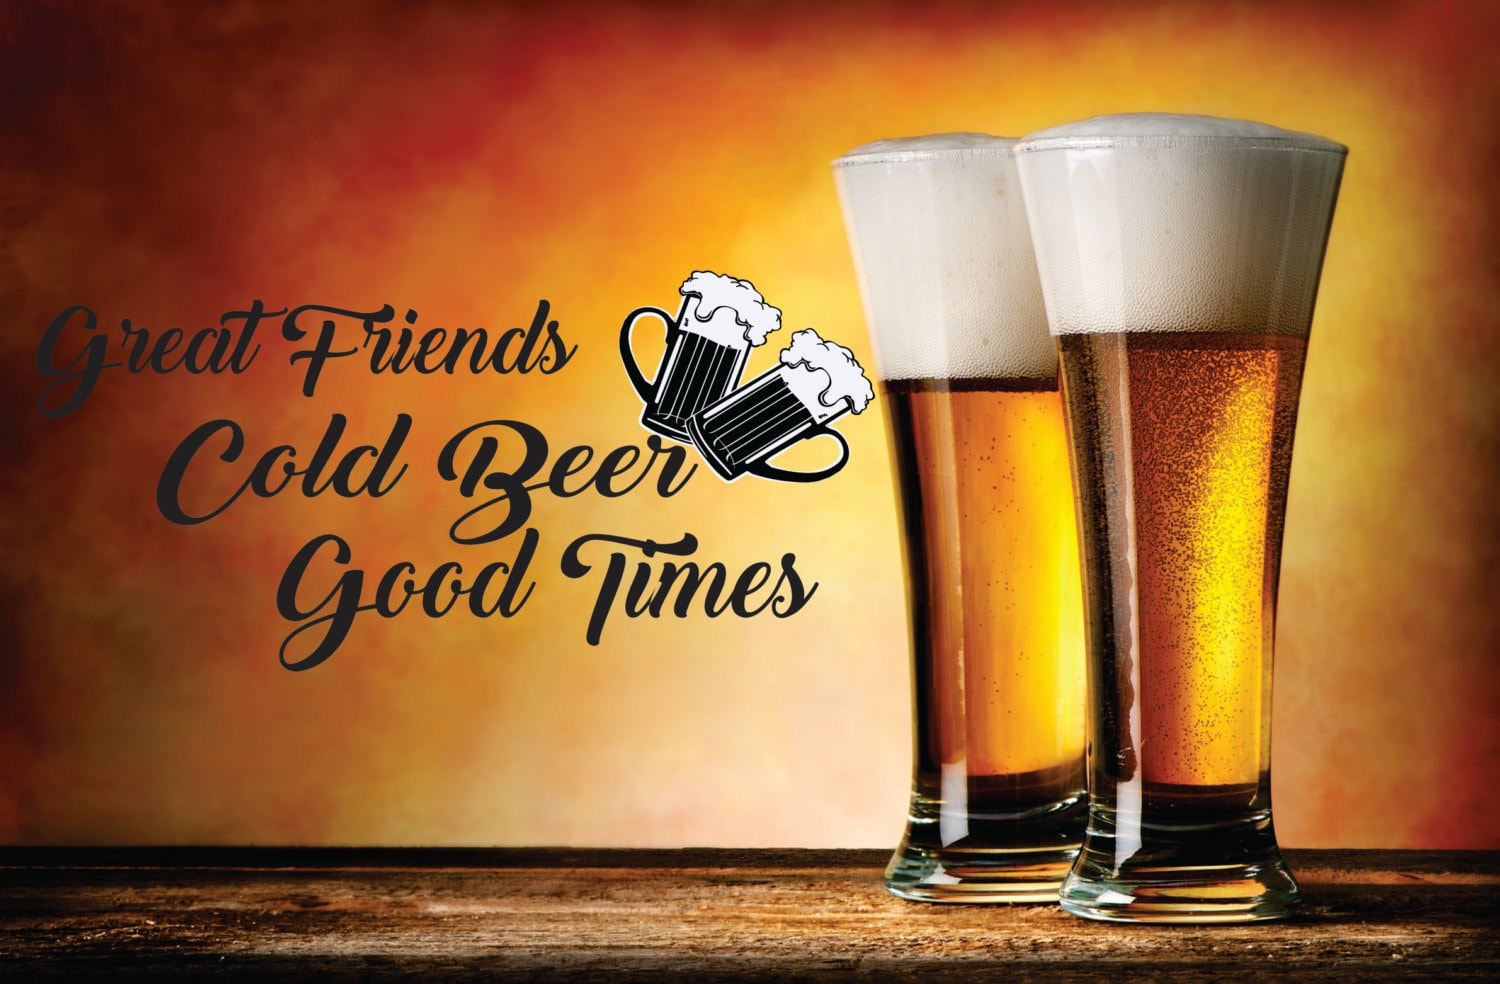 Great Friends Cold Beer Good Times beer mugs drinking   Etsy